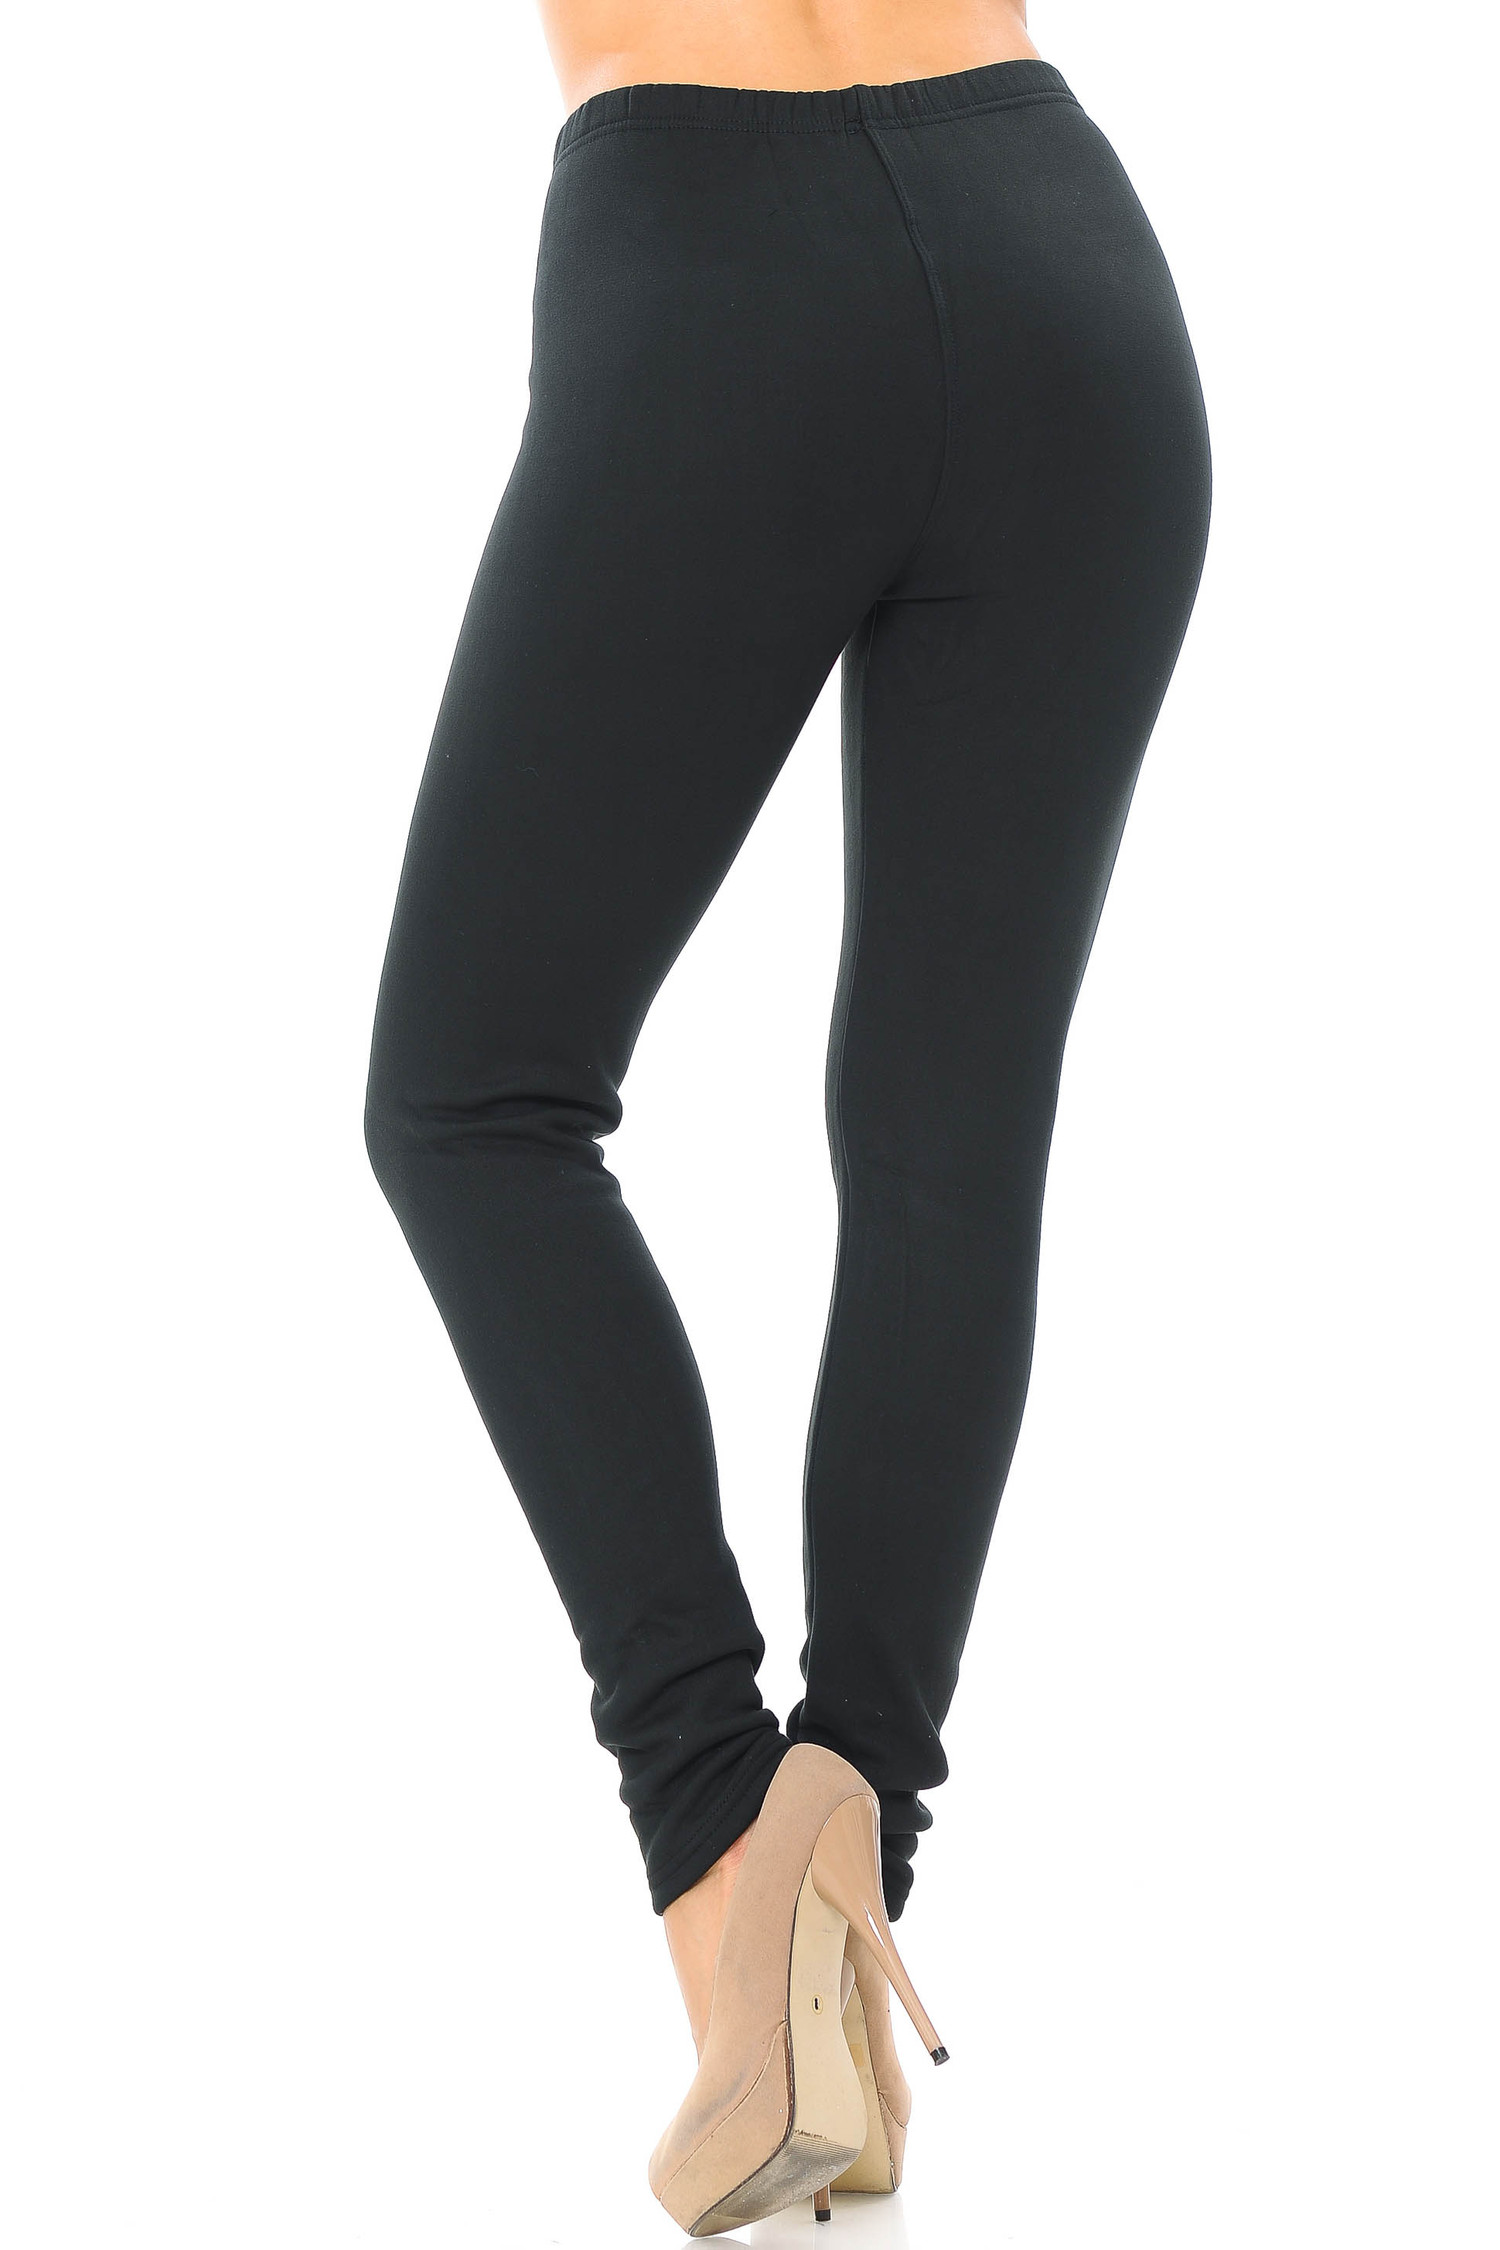 Back side view of Luxury Creamy Soft Fleece Lined Extra Plus Size Leggings - 3X-5X - USA Fashion™